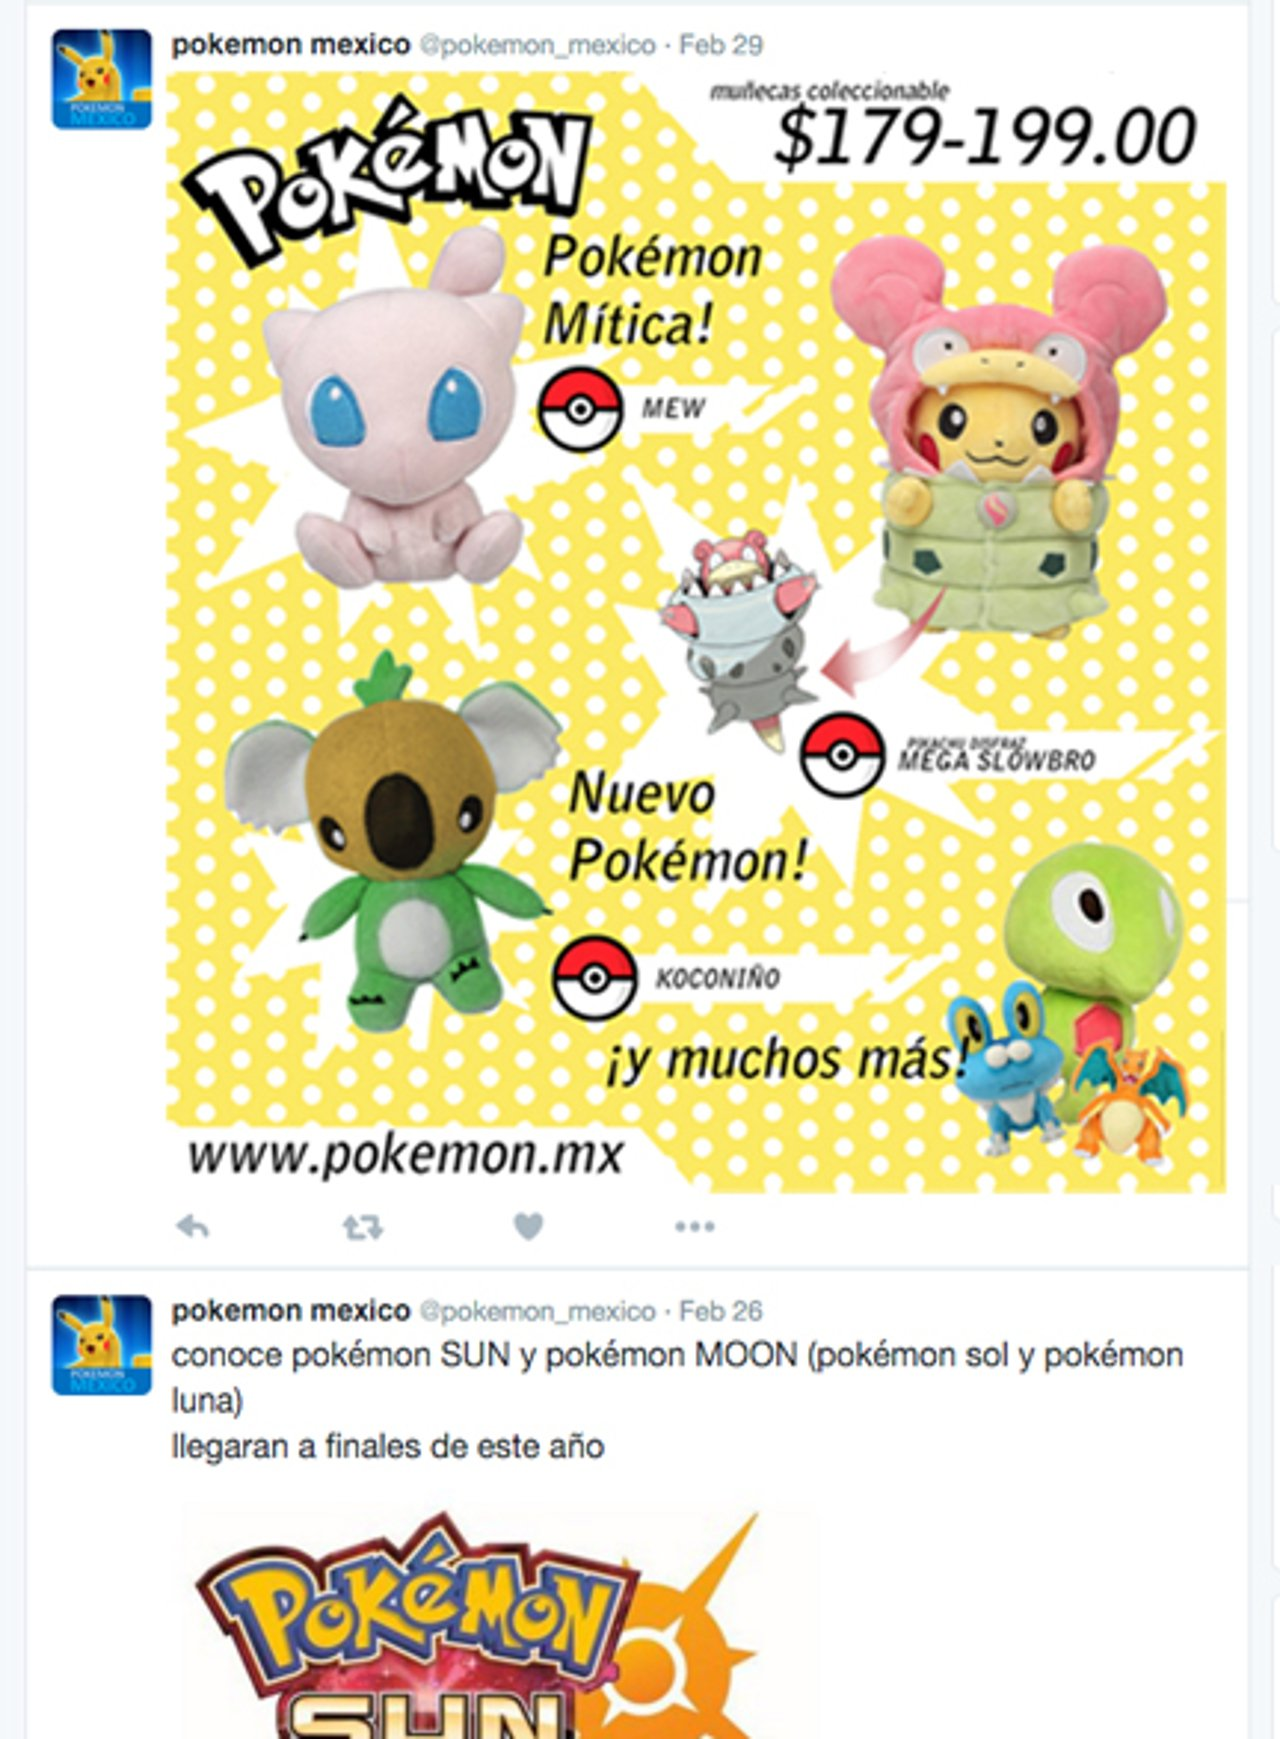 pokèmon-mexico-news